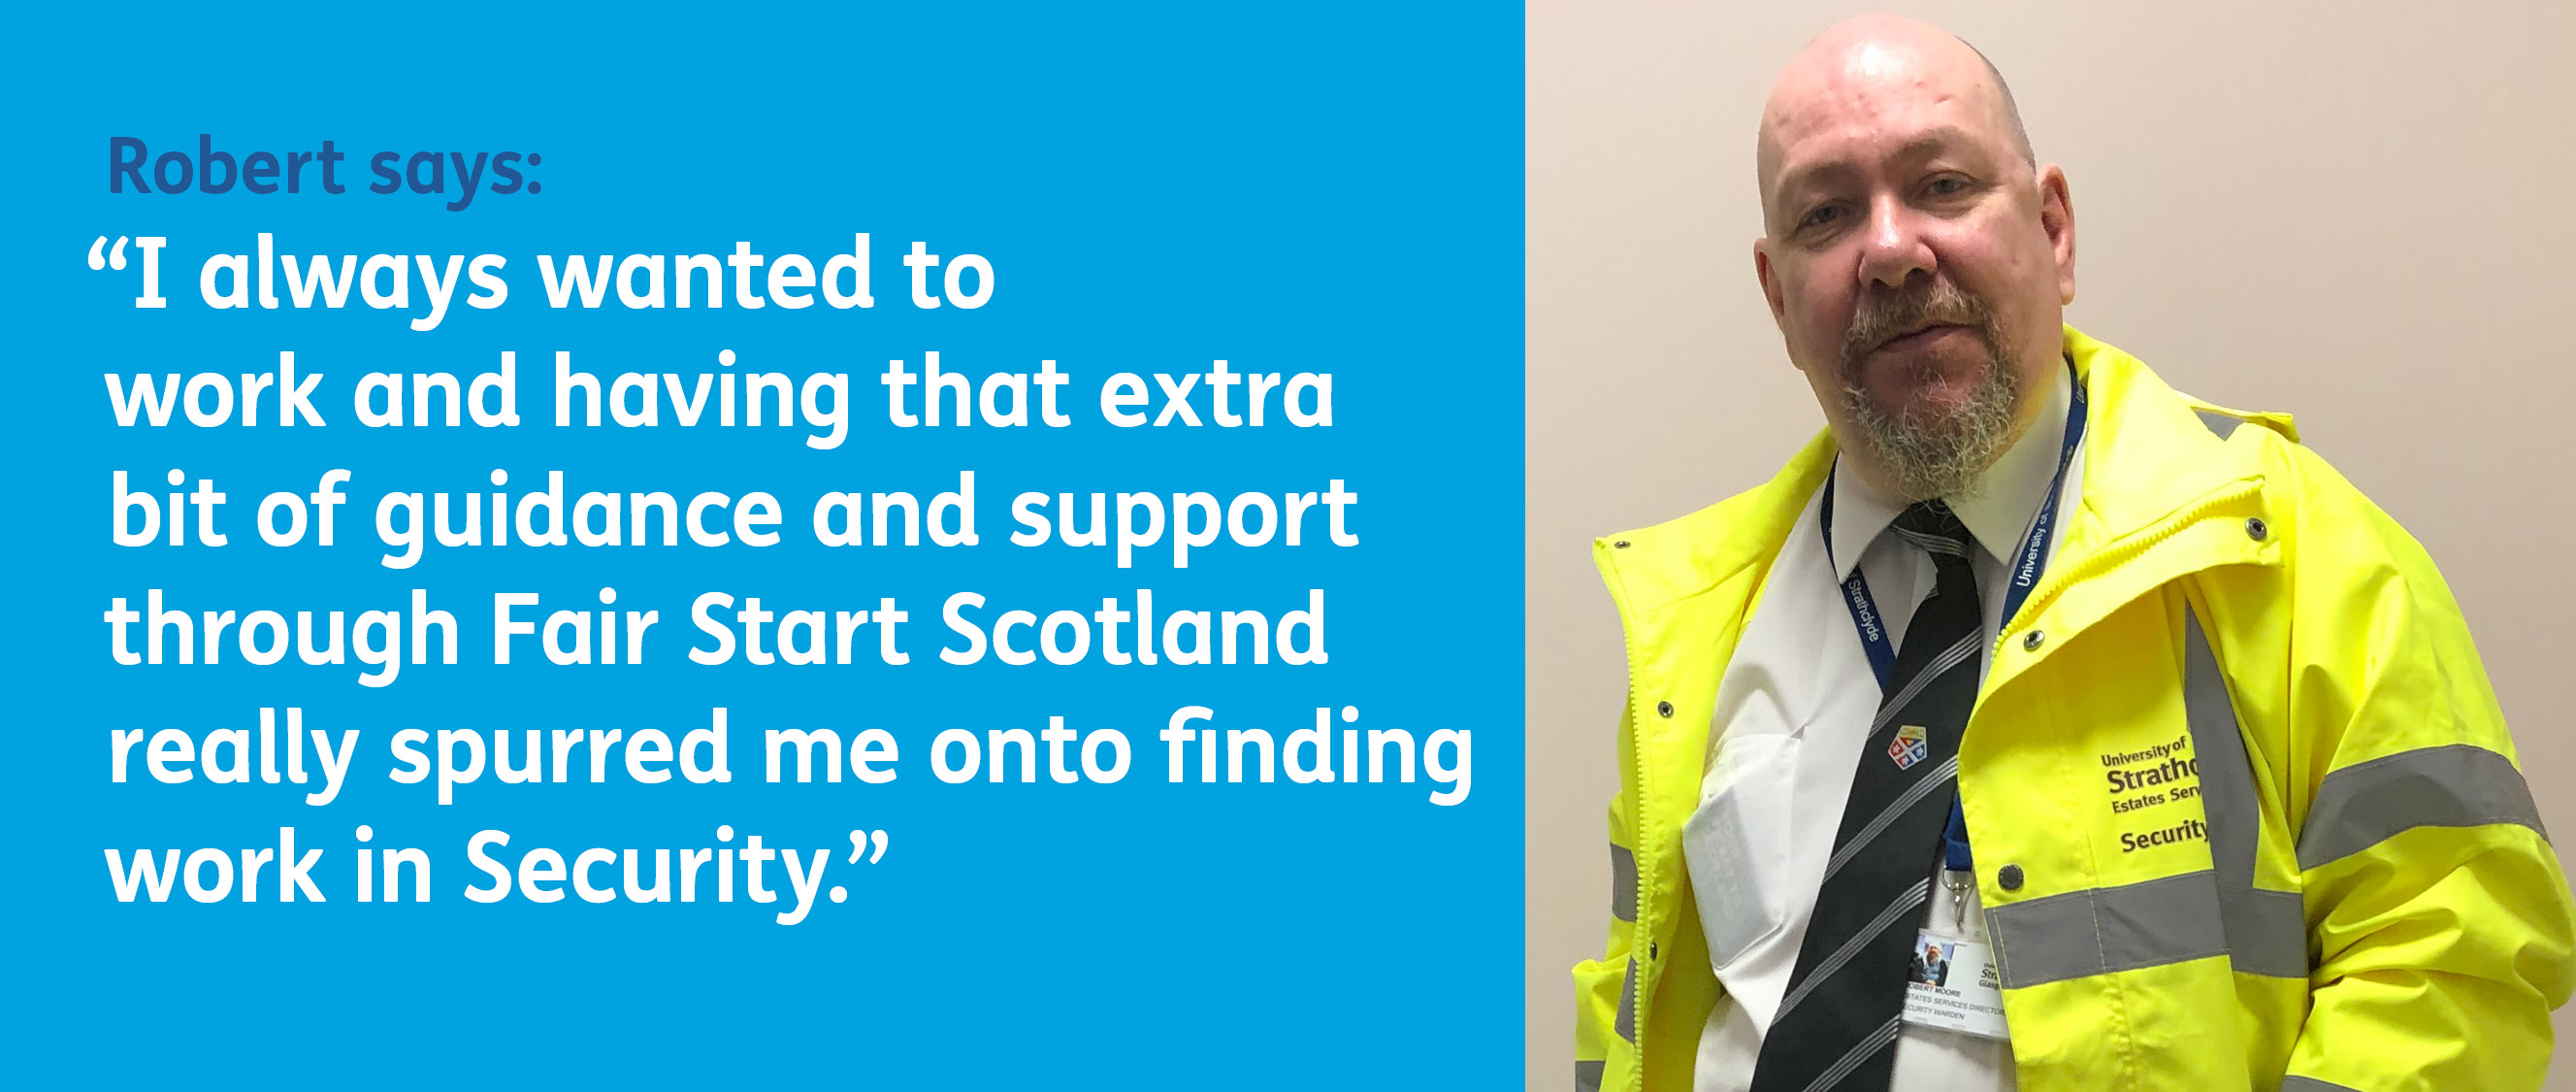 Robert says: I always wanted to work and having that extra bit of guidance and support through Fair Start Scotland really spurred me onto finding work in Security